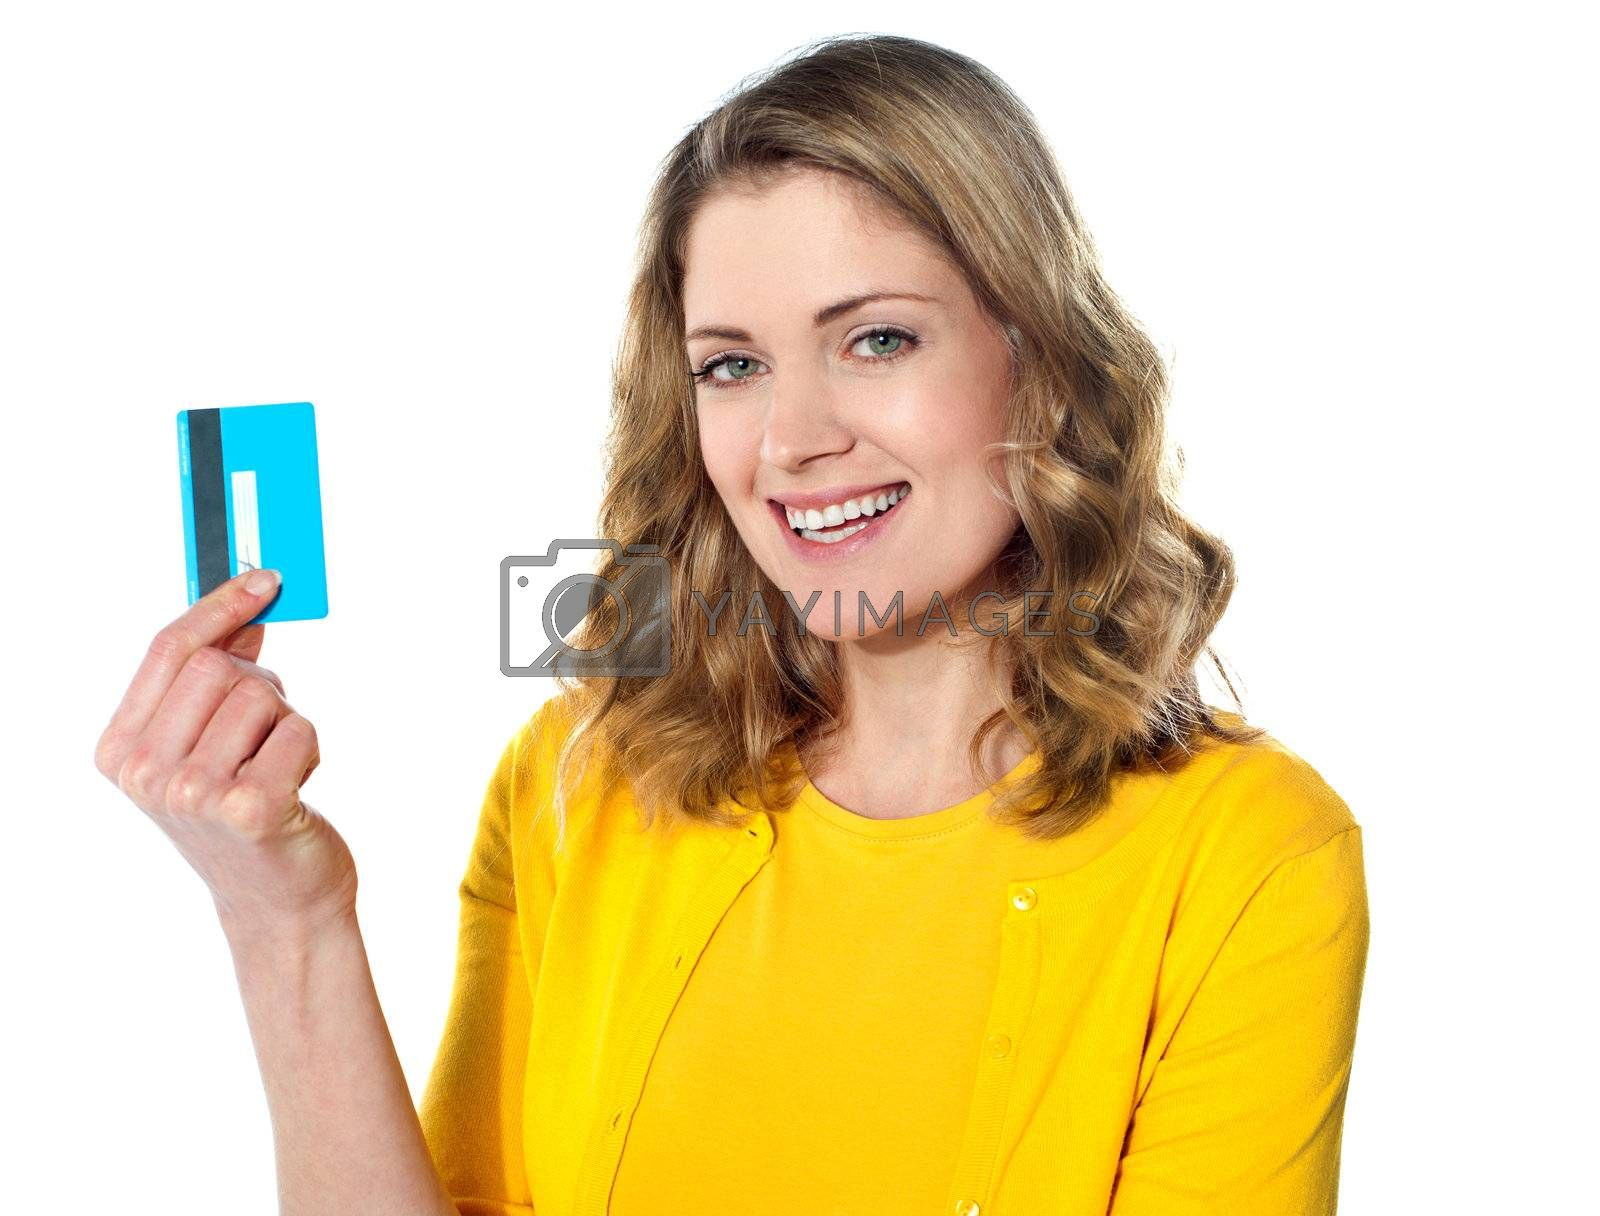 Close-up portrait of young smiling businesswoman holding credit card isolated on white background